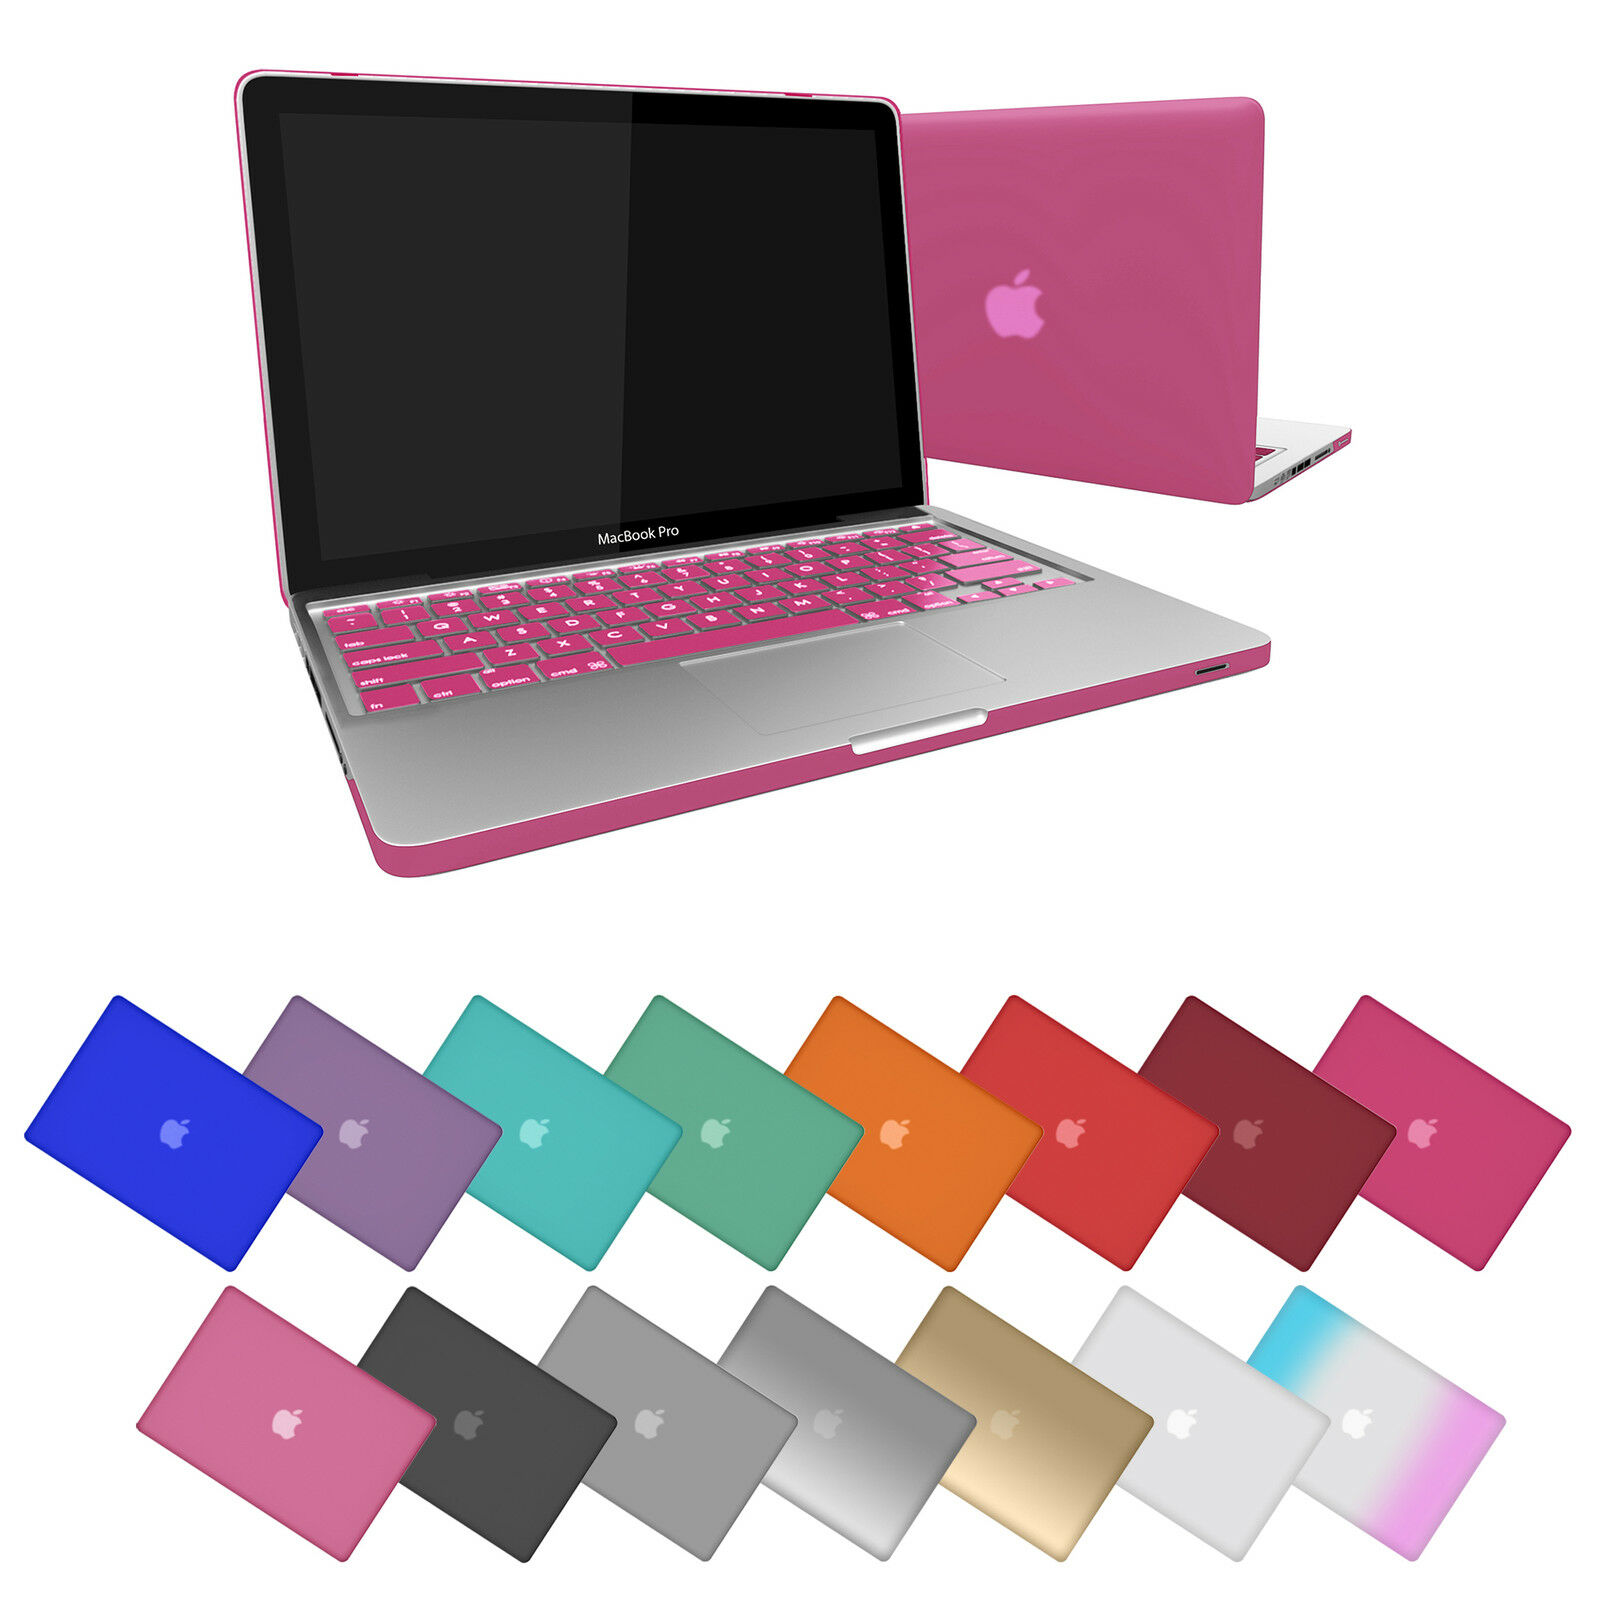 Rubberized Matte Shell Case For Apple Macbook Pro 13 133 Retina 15 Inch Grey 1 Of 6free Shipping